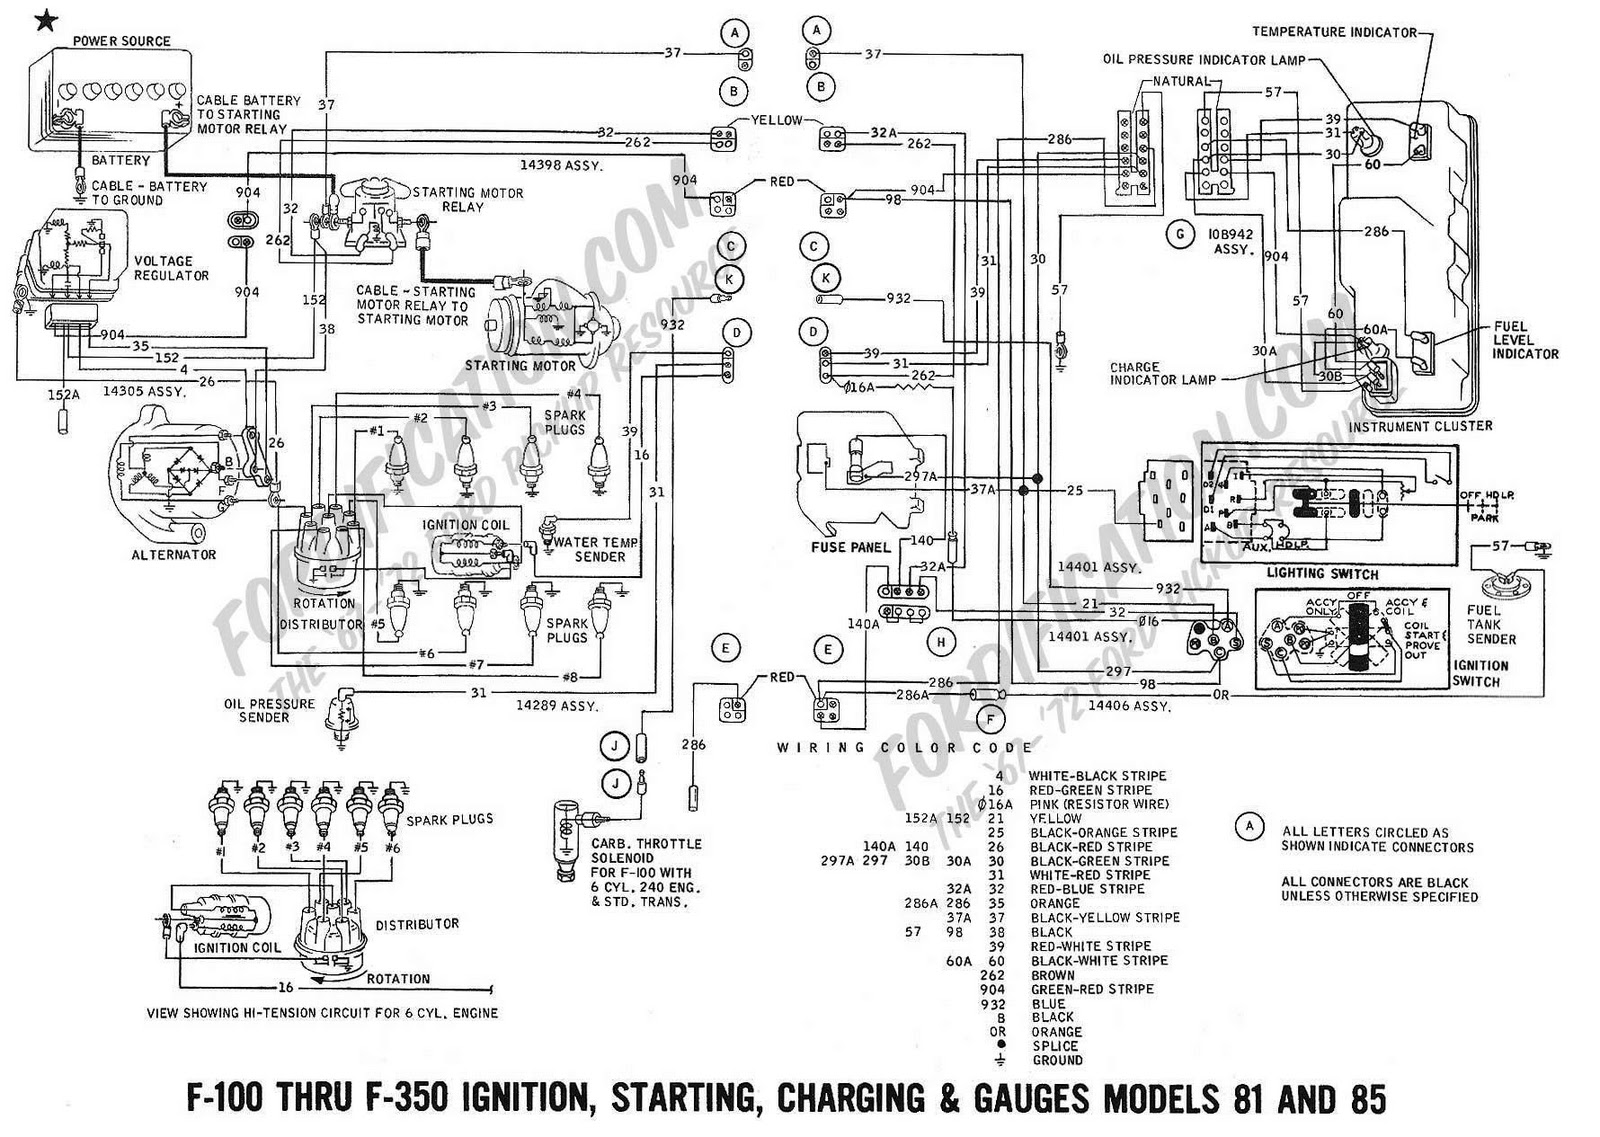 1968 Ford F100 Ignition Wiring Diagram - Wiring Diagrams Site Ford Truck Wiring Diagrams on ford alternator wiring diagram, ford e350 wiring diagram, ford explorer wiring diagram, ford radio wiring diagram, ford truck wiring harness, 1996 ford f 150 diagrams, ford schematics, ford econoline wiring-diagram, ford bronco wiring diagram, ford wiring color codes, ford truck electrical diagrams, ford f650 wiring diagram, ford truck brake diagrams, ford voltage regulator diagram, ford l9000 wiring-diagram, ford excursion wiring diagram, ford f-150 7-way wiring diagram, ford f-250 wiring diagram, ford think wiring diagram, ford towing package wiring diagram,